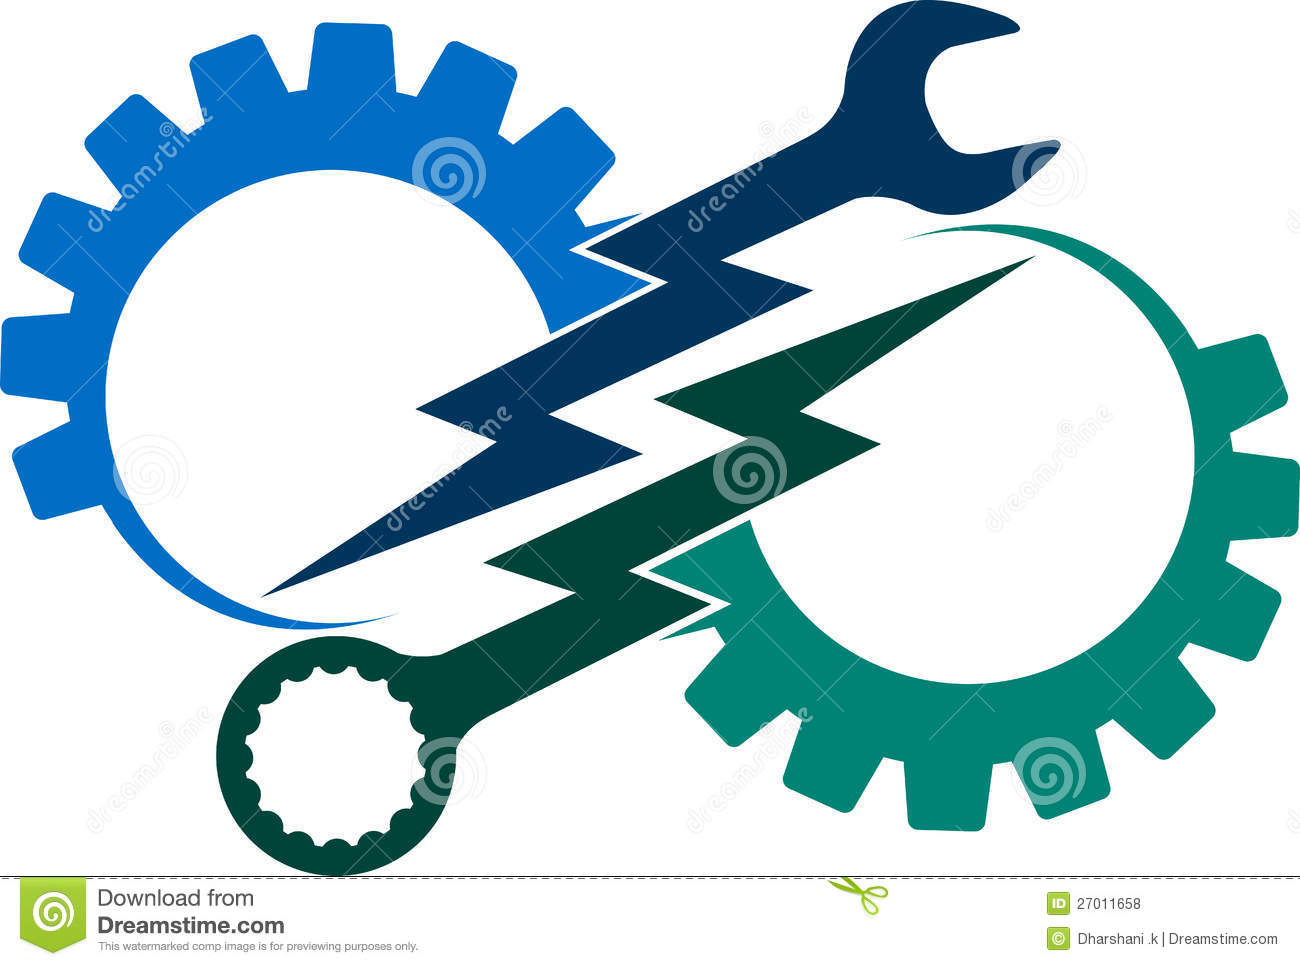 Engineering clipart mechanical energy. Cliparts free download best